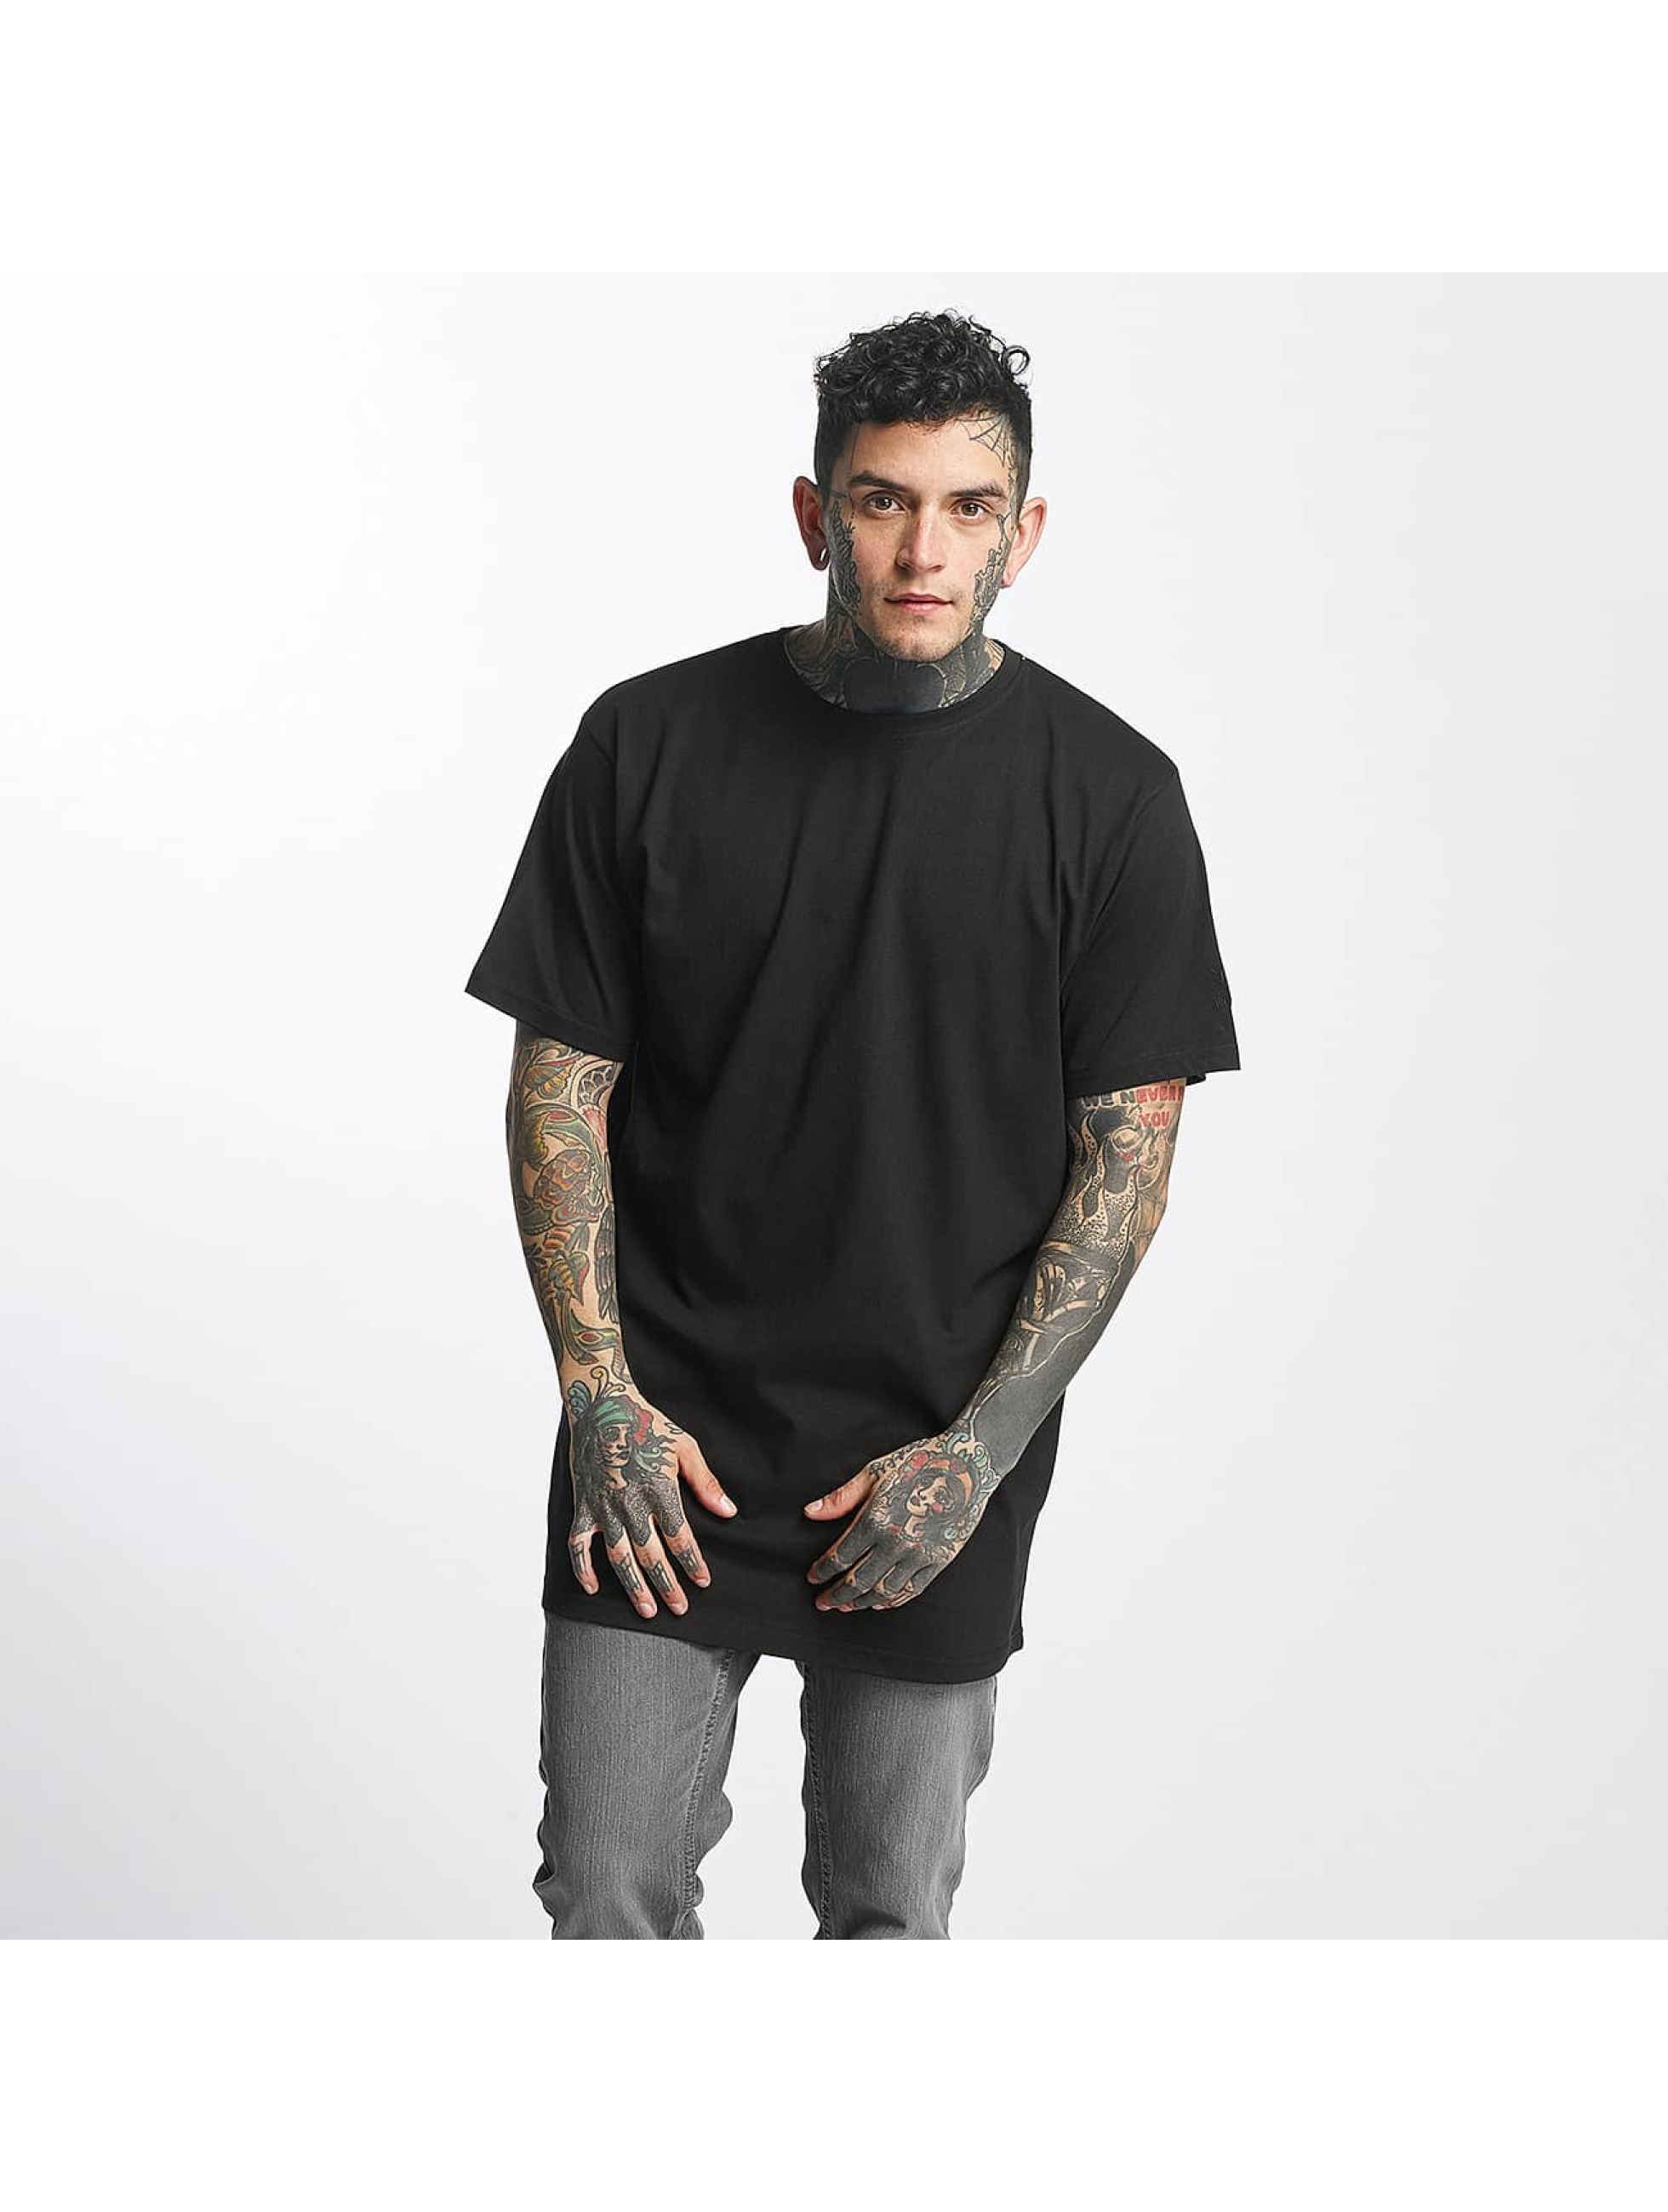 Tuffskull Tall Tees Nothing nero